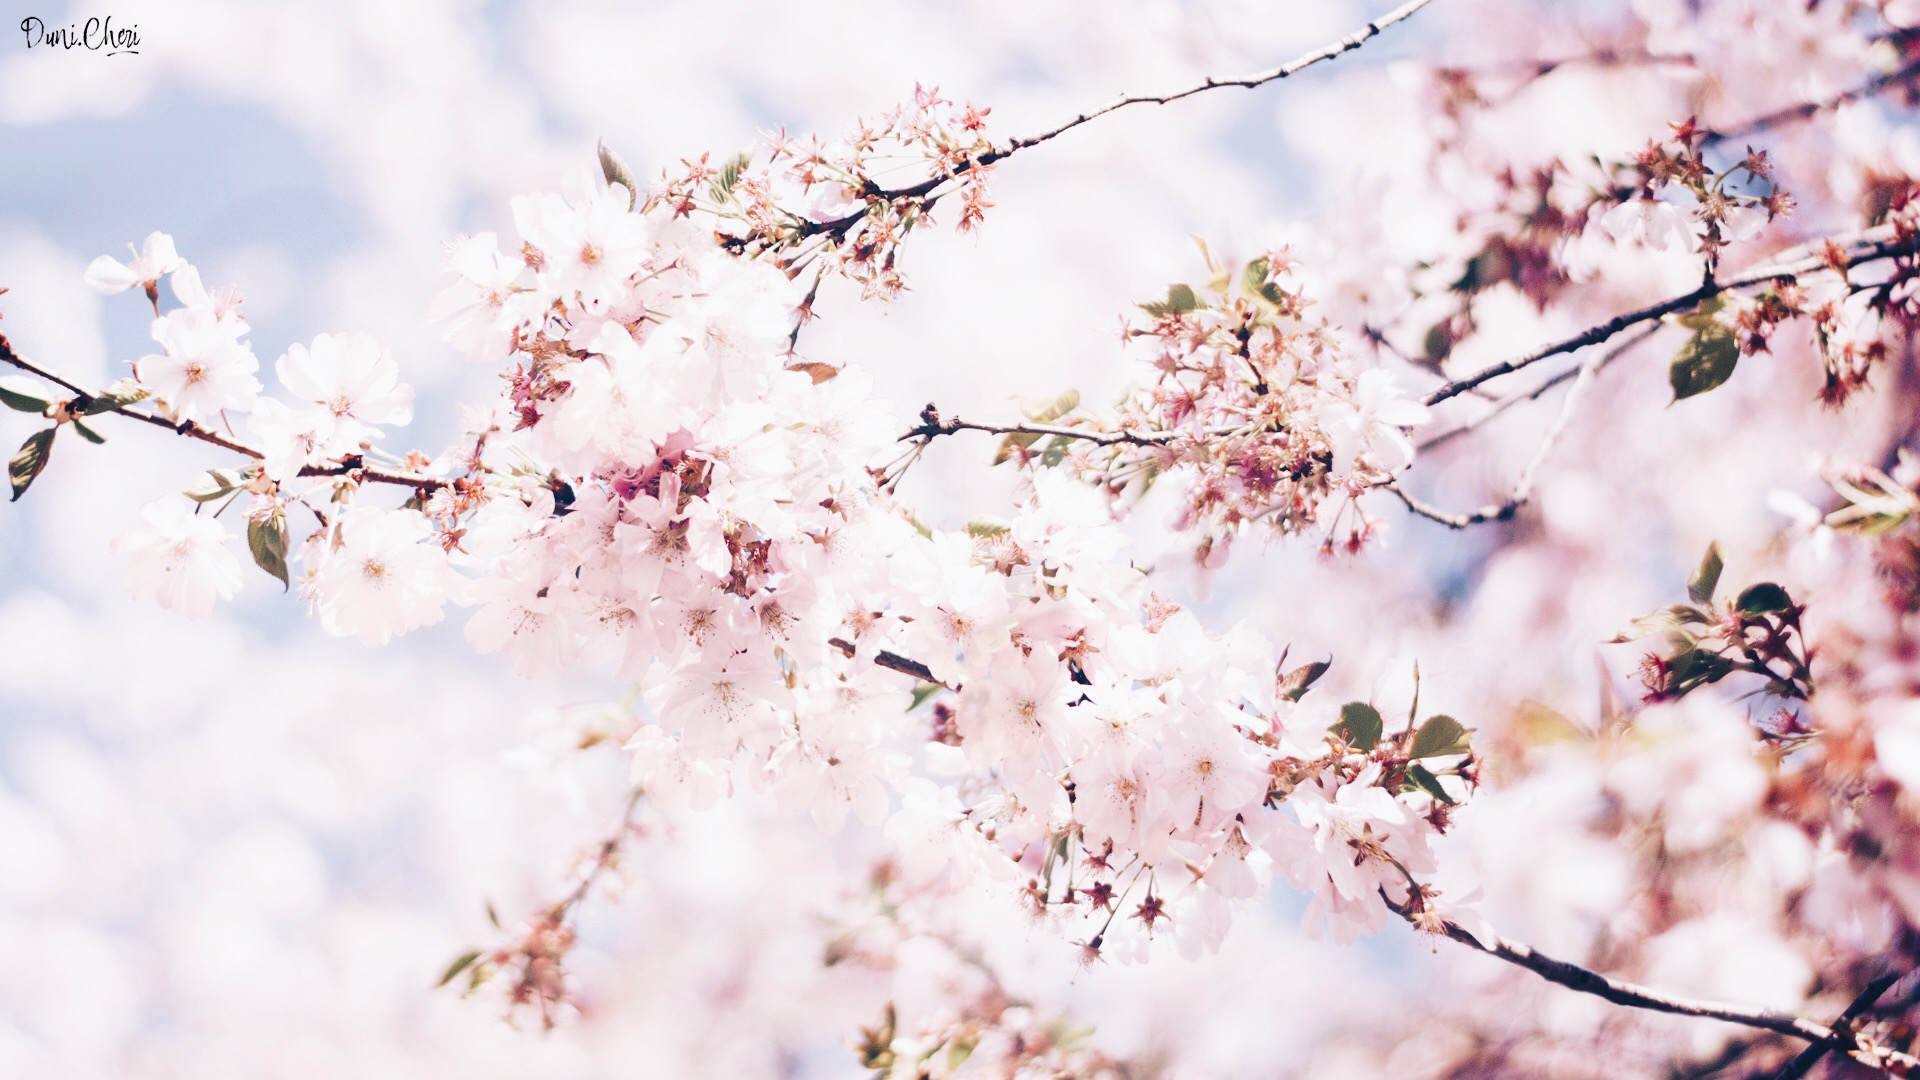 cherry blossom wallpaperdesktop